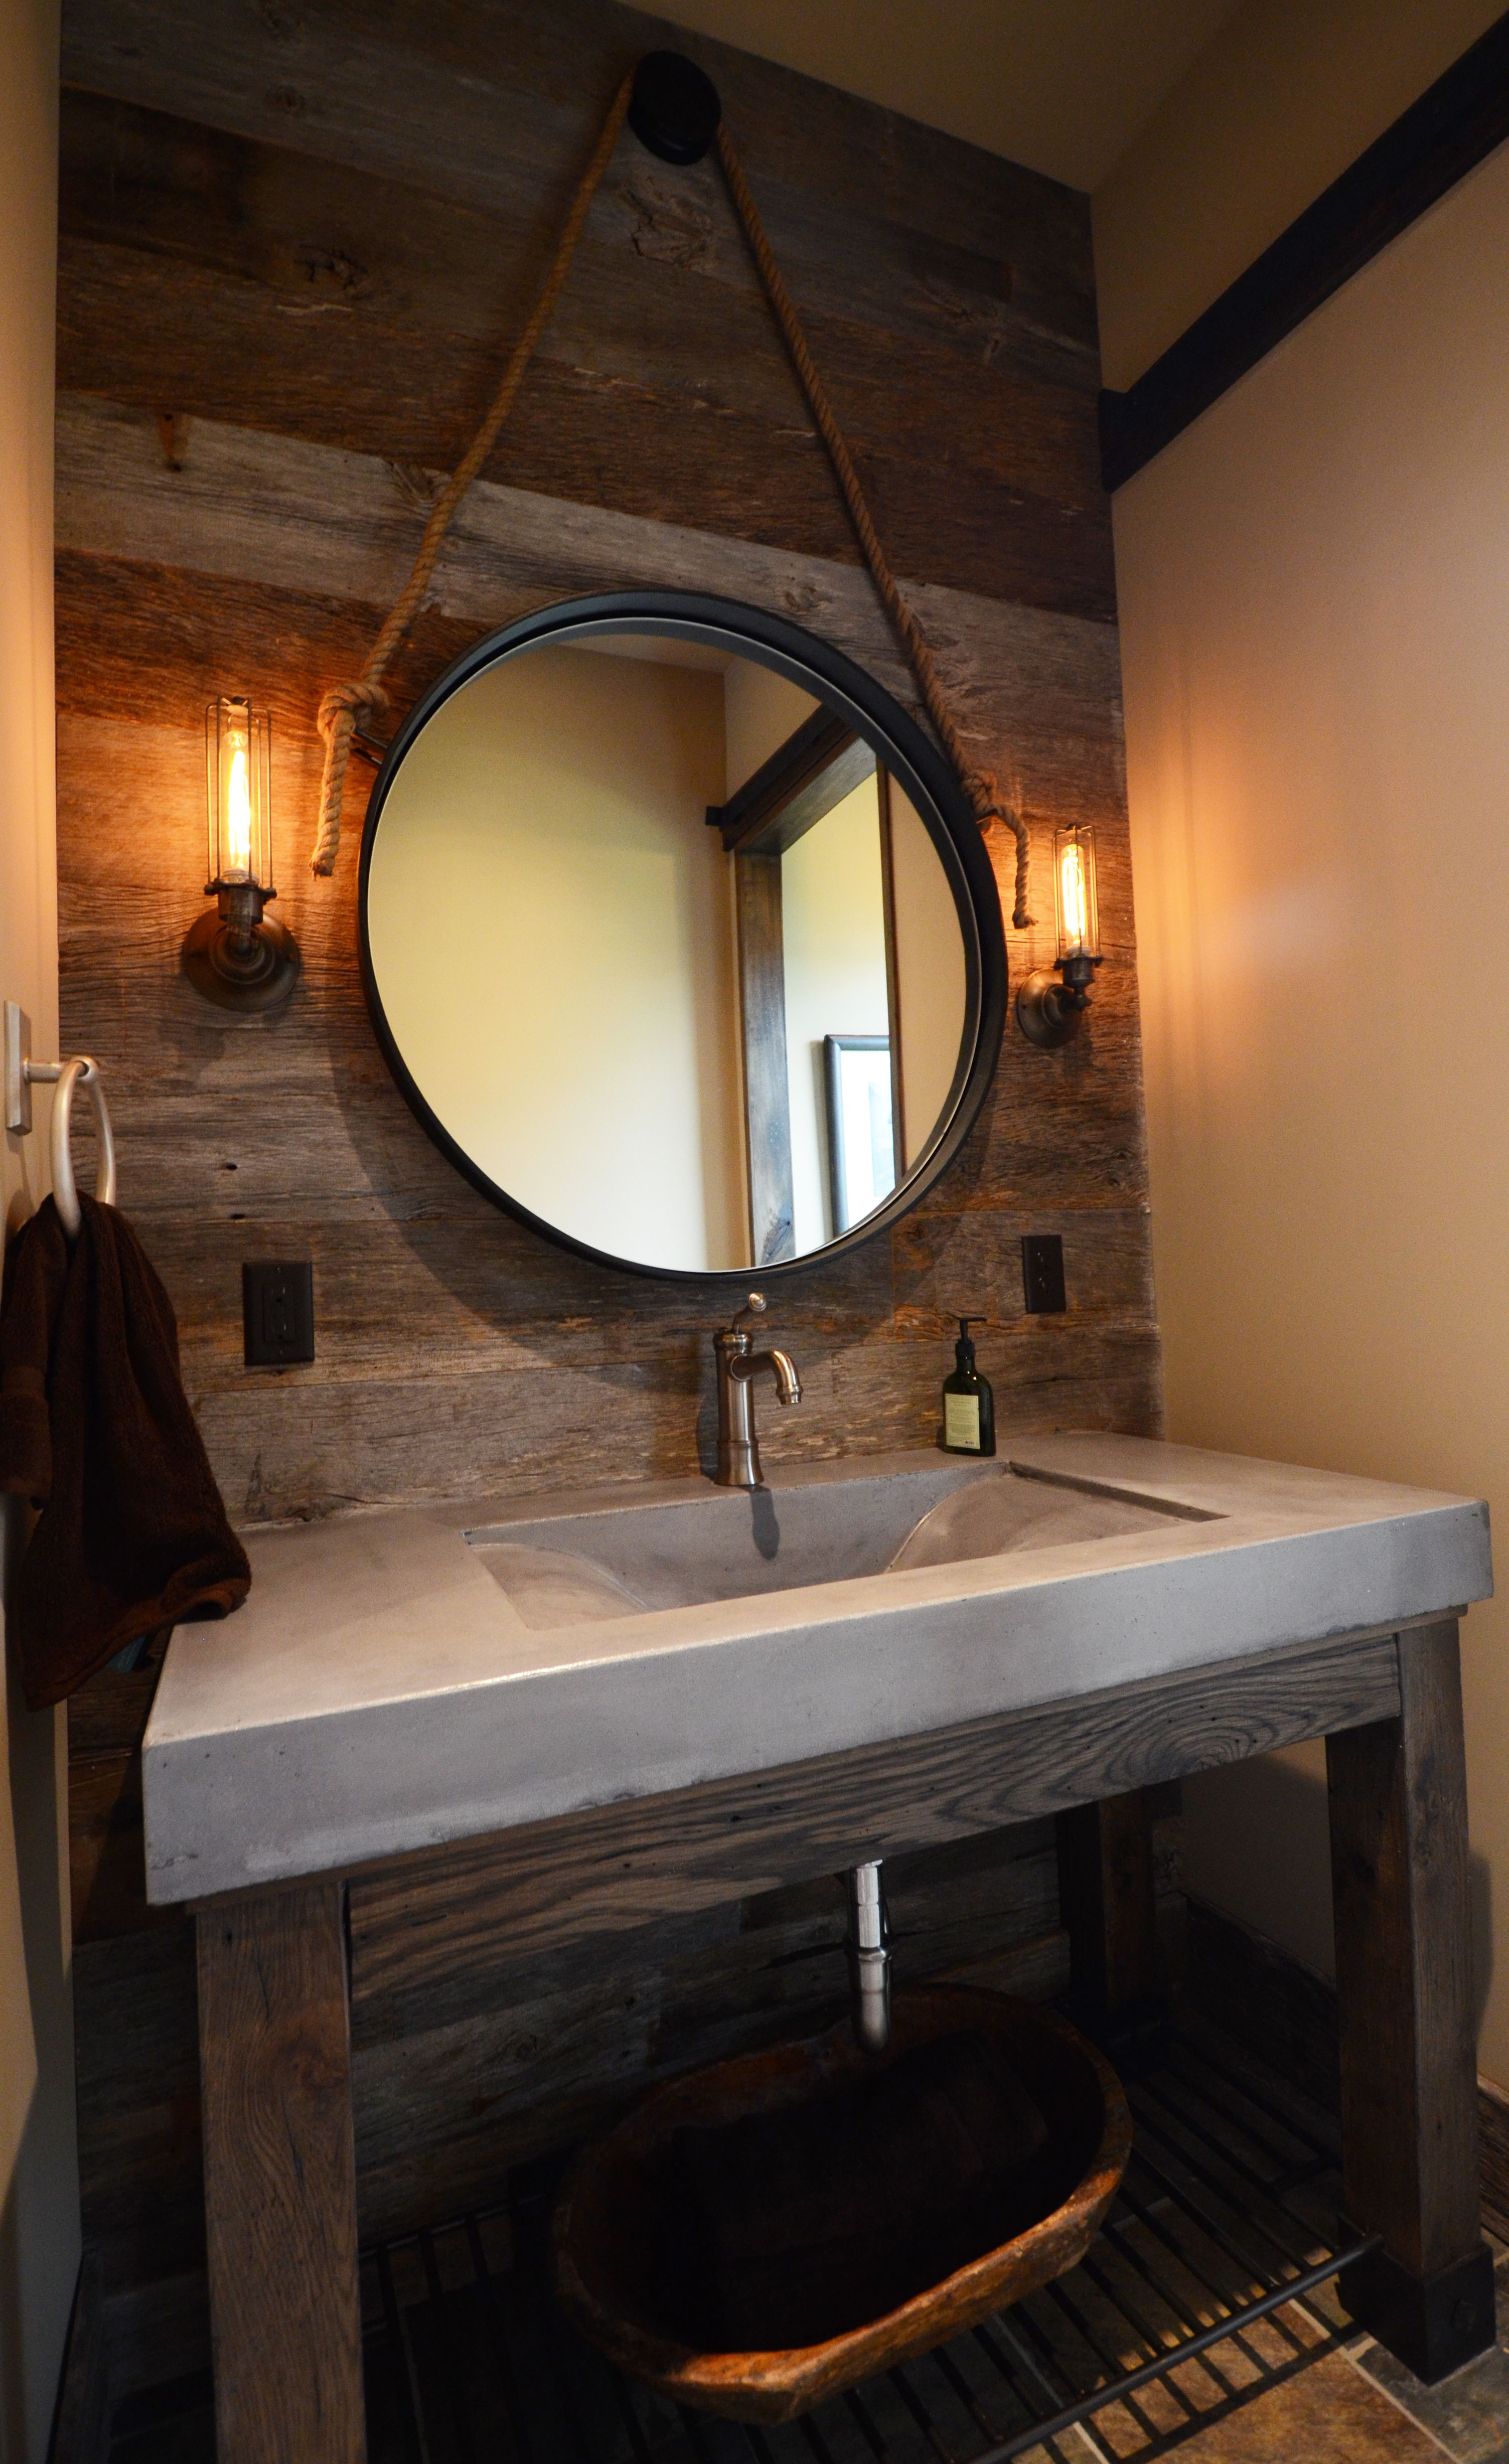 Design Chic: Things We Love: Concrete Sinks And That Mirror!